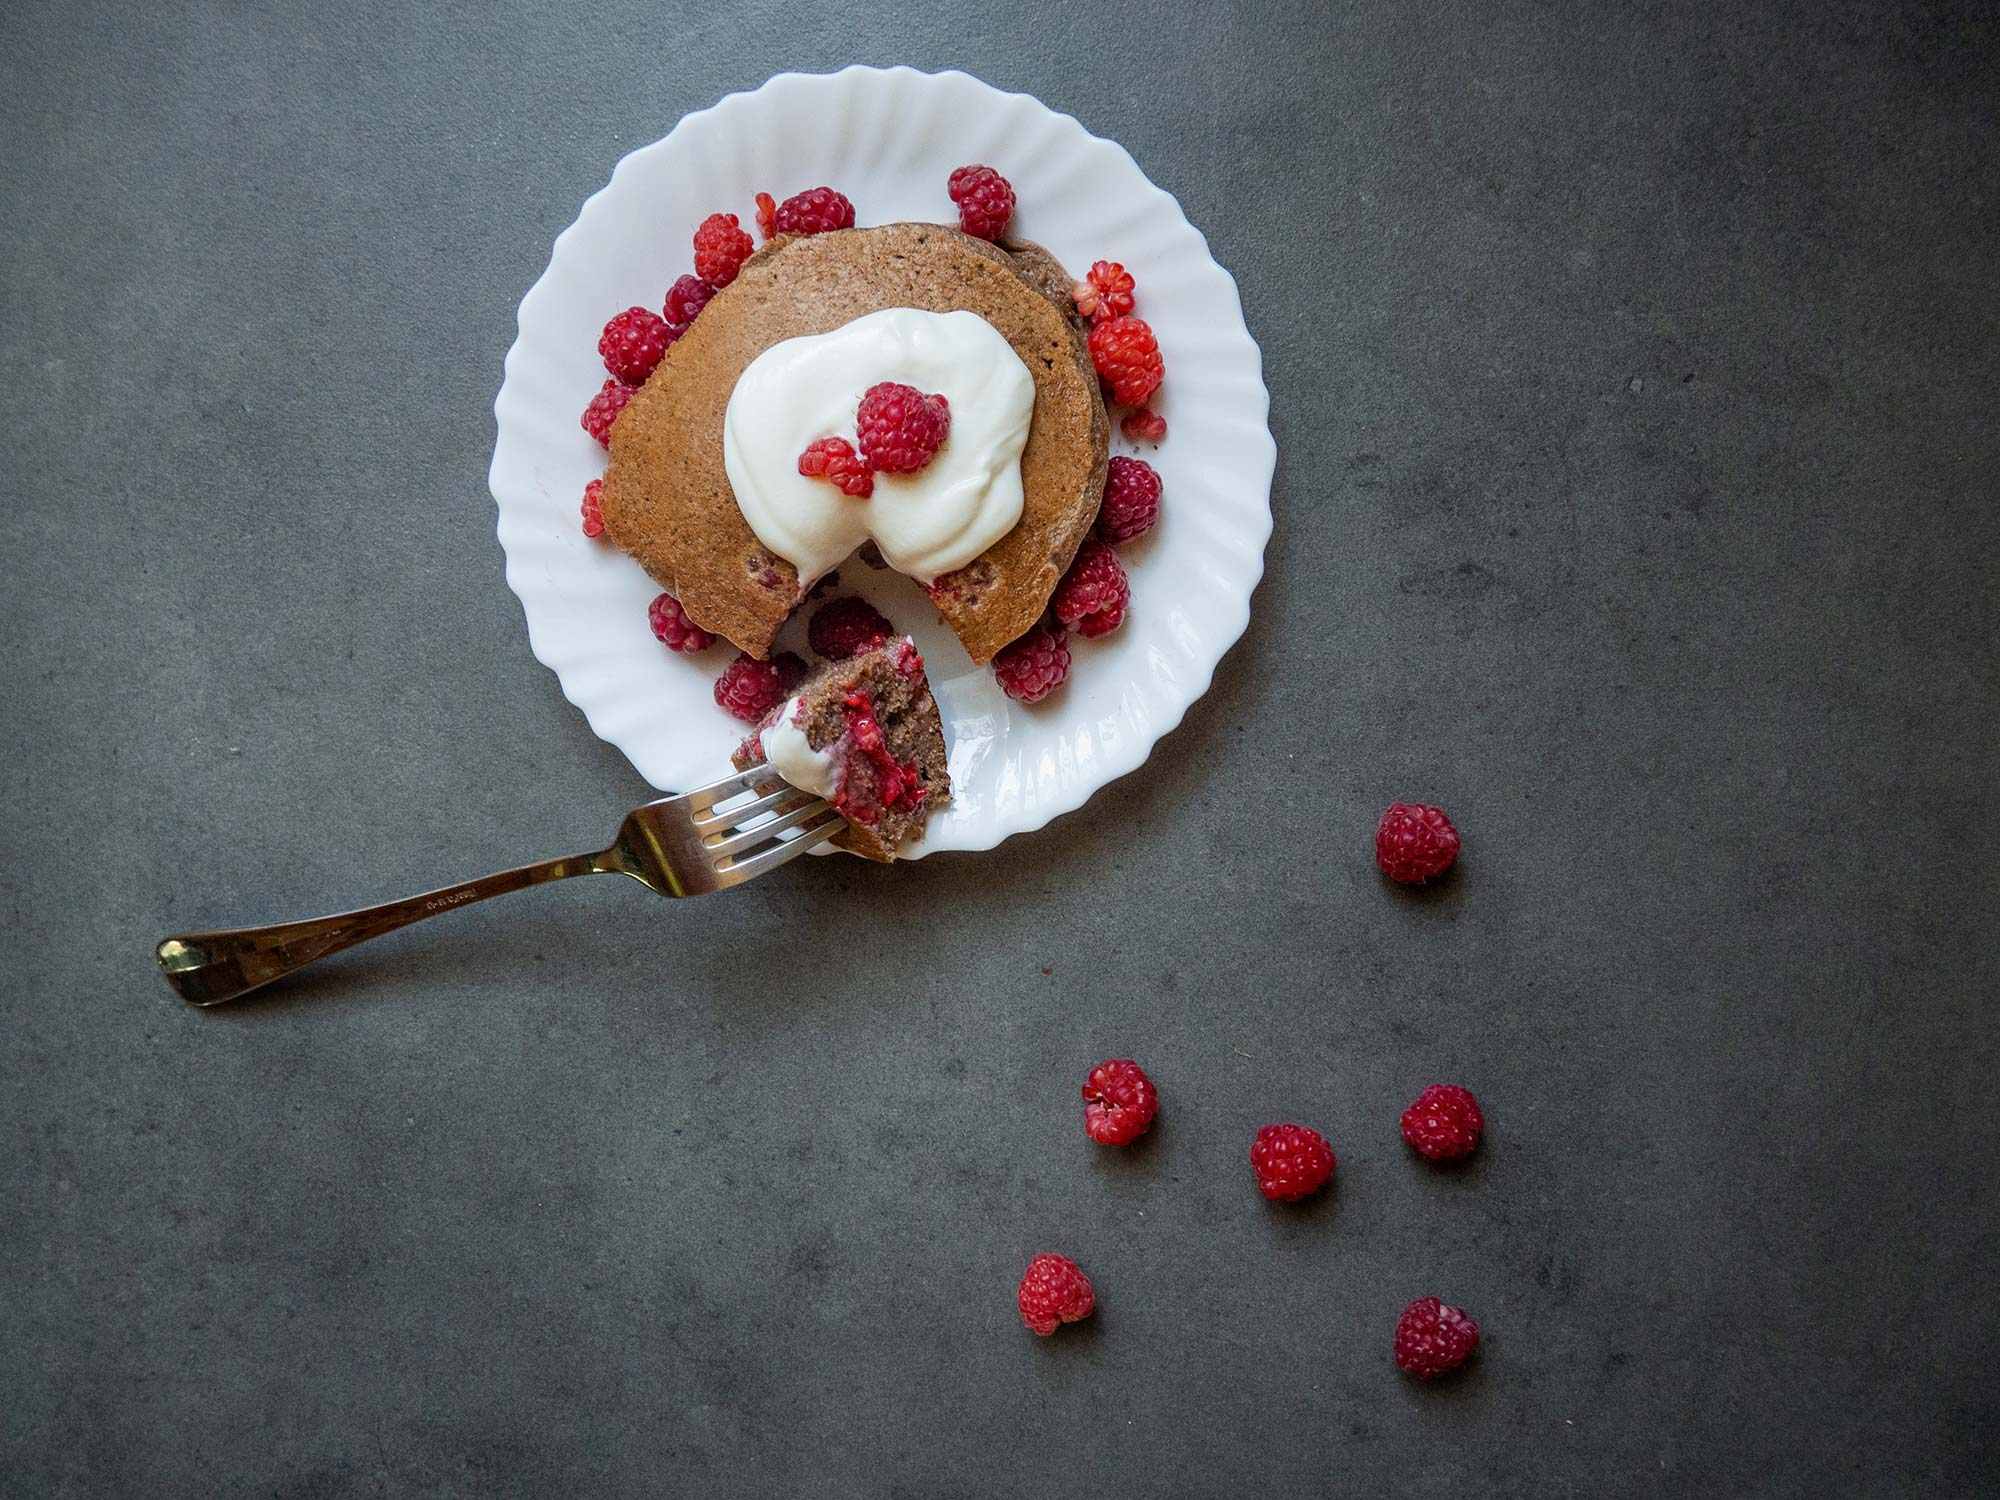 Lunch #7 – Chocolate Pancakes with Raspberries